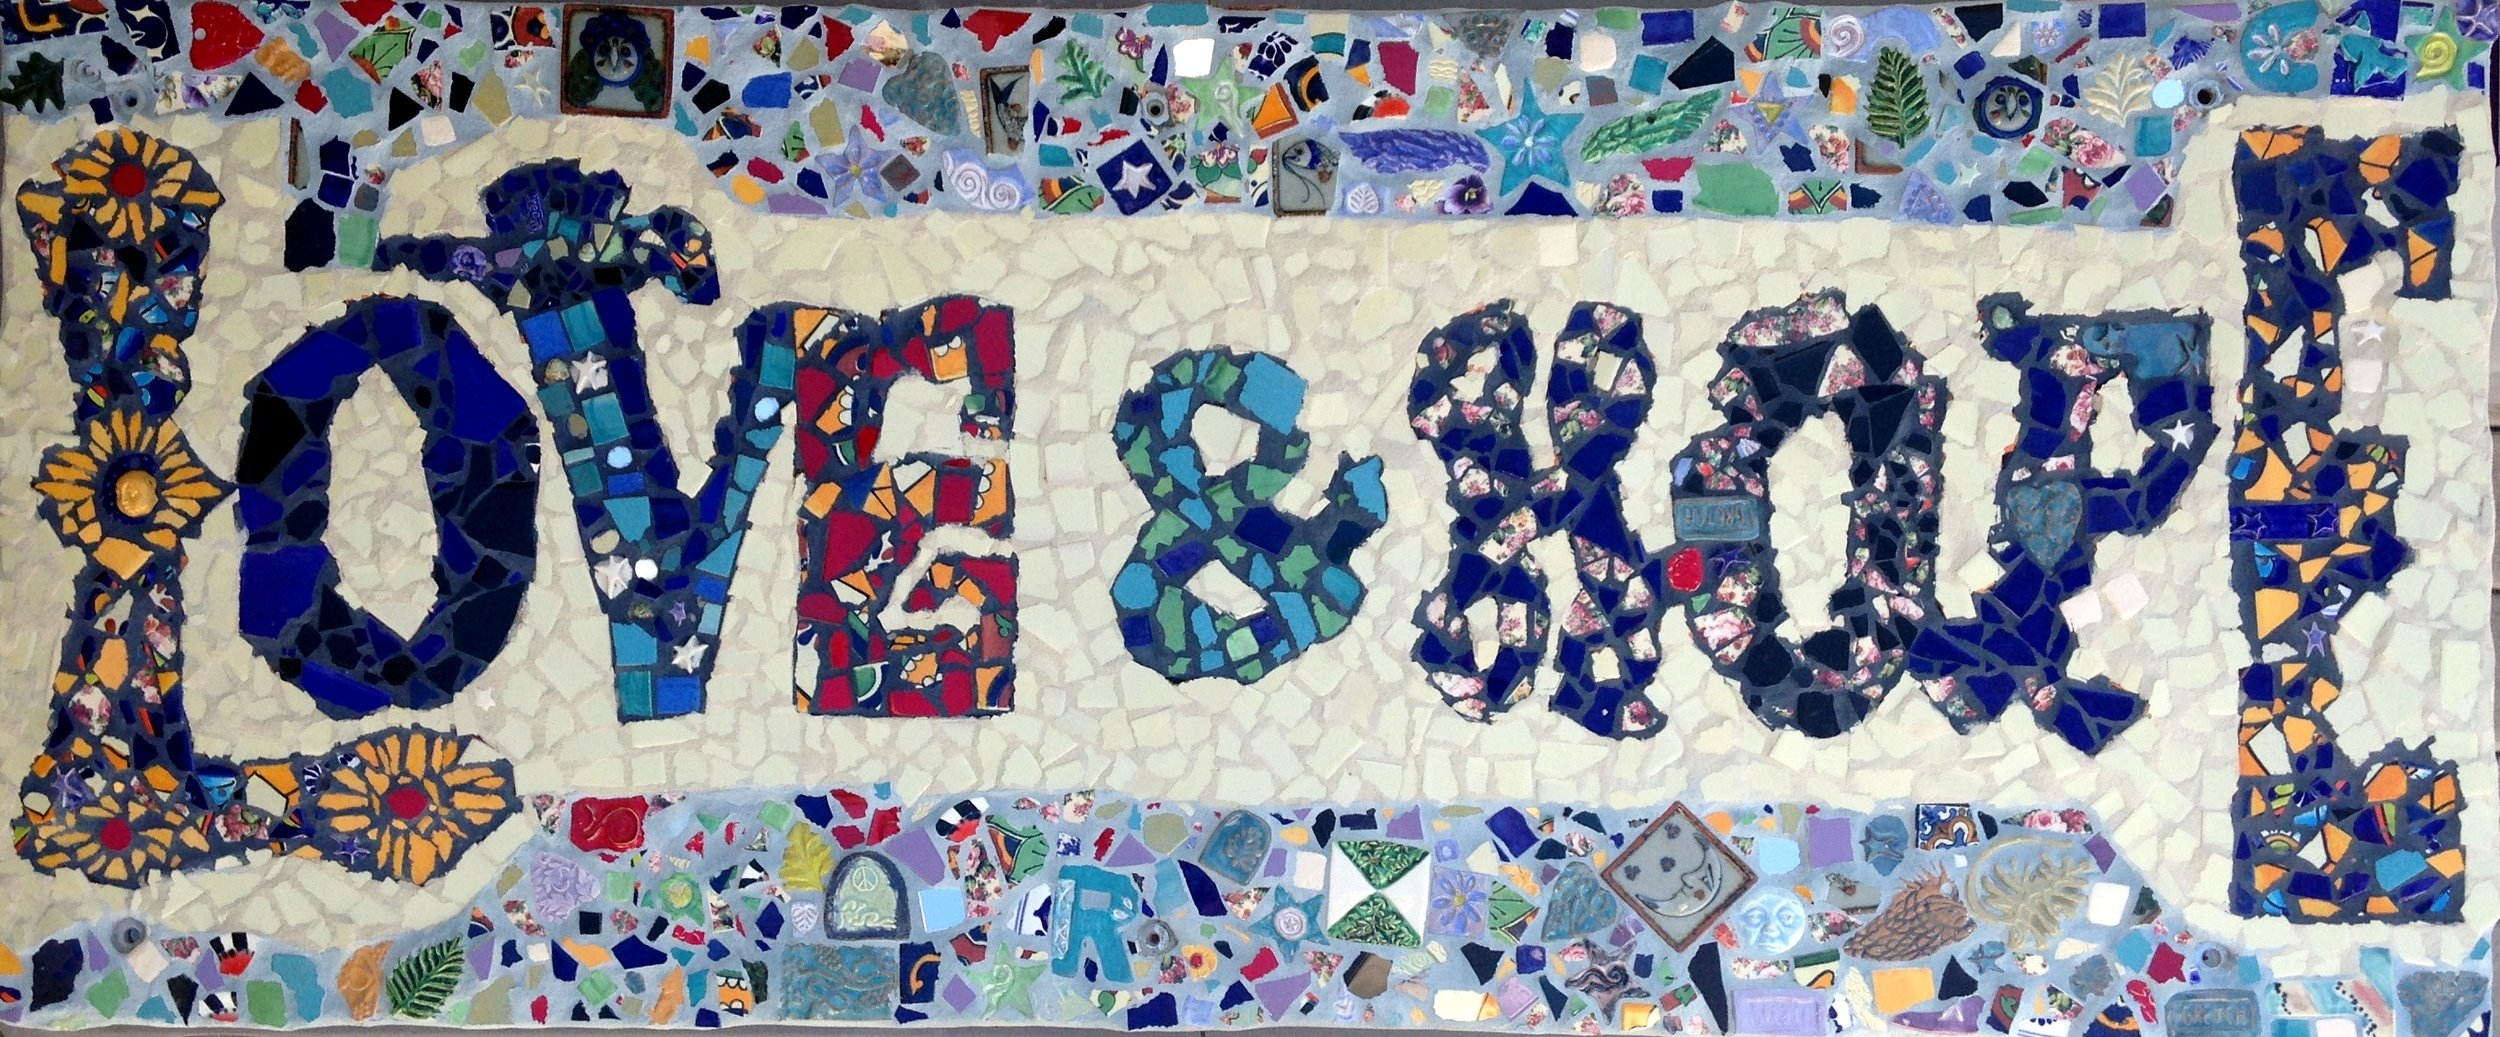 """LOVE AND HOPE"" mosaic, public art project created by Youth in Crisis at the Youth Shelter in Laguna Beach, CA. Funded by LOCA, Gretchen and Terry Shannon and Carla Meberg Facilitated by Gretchen Shannon and Carla Meberg."